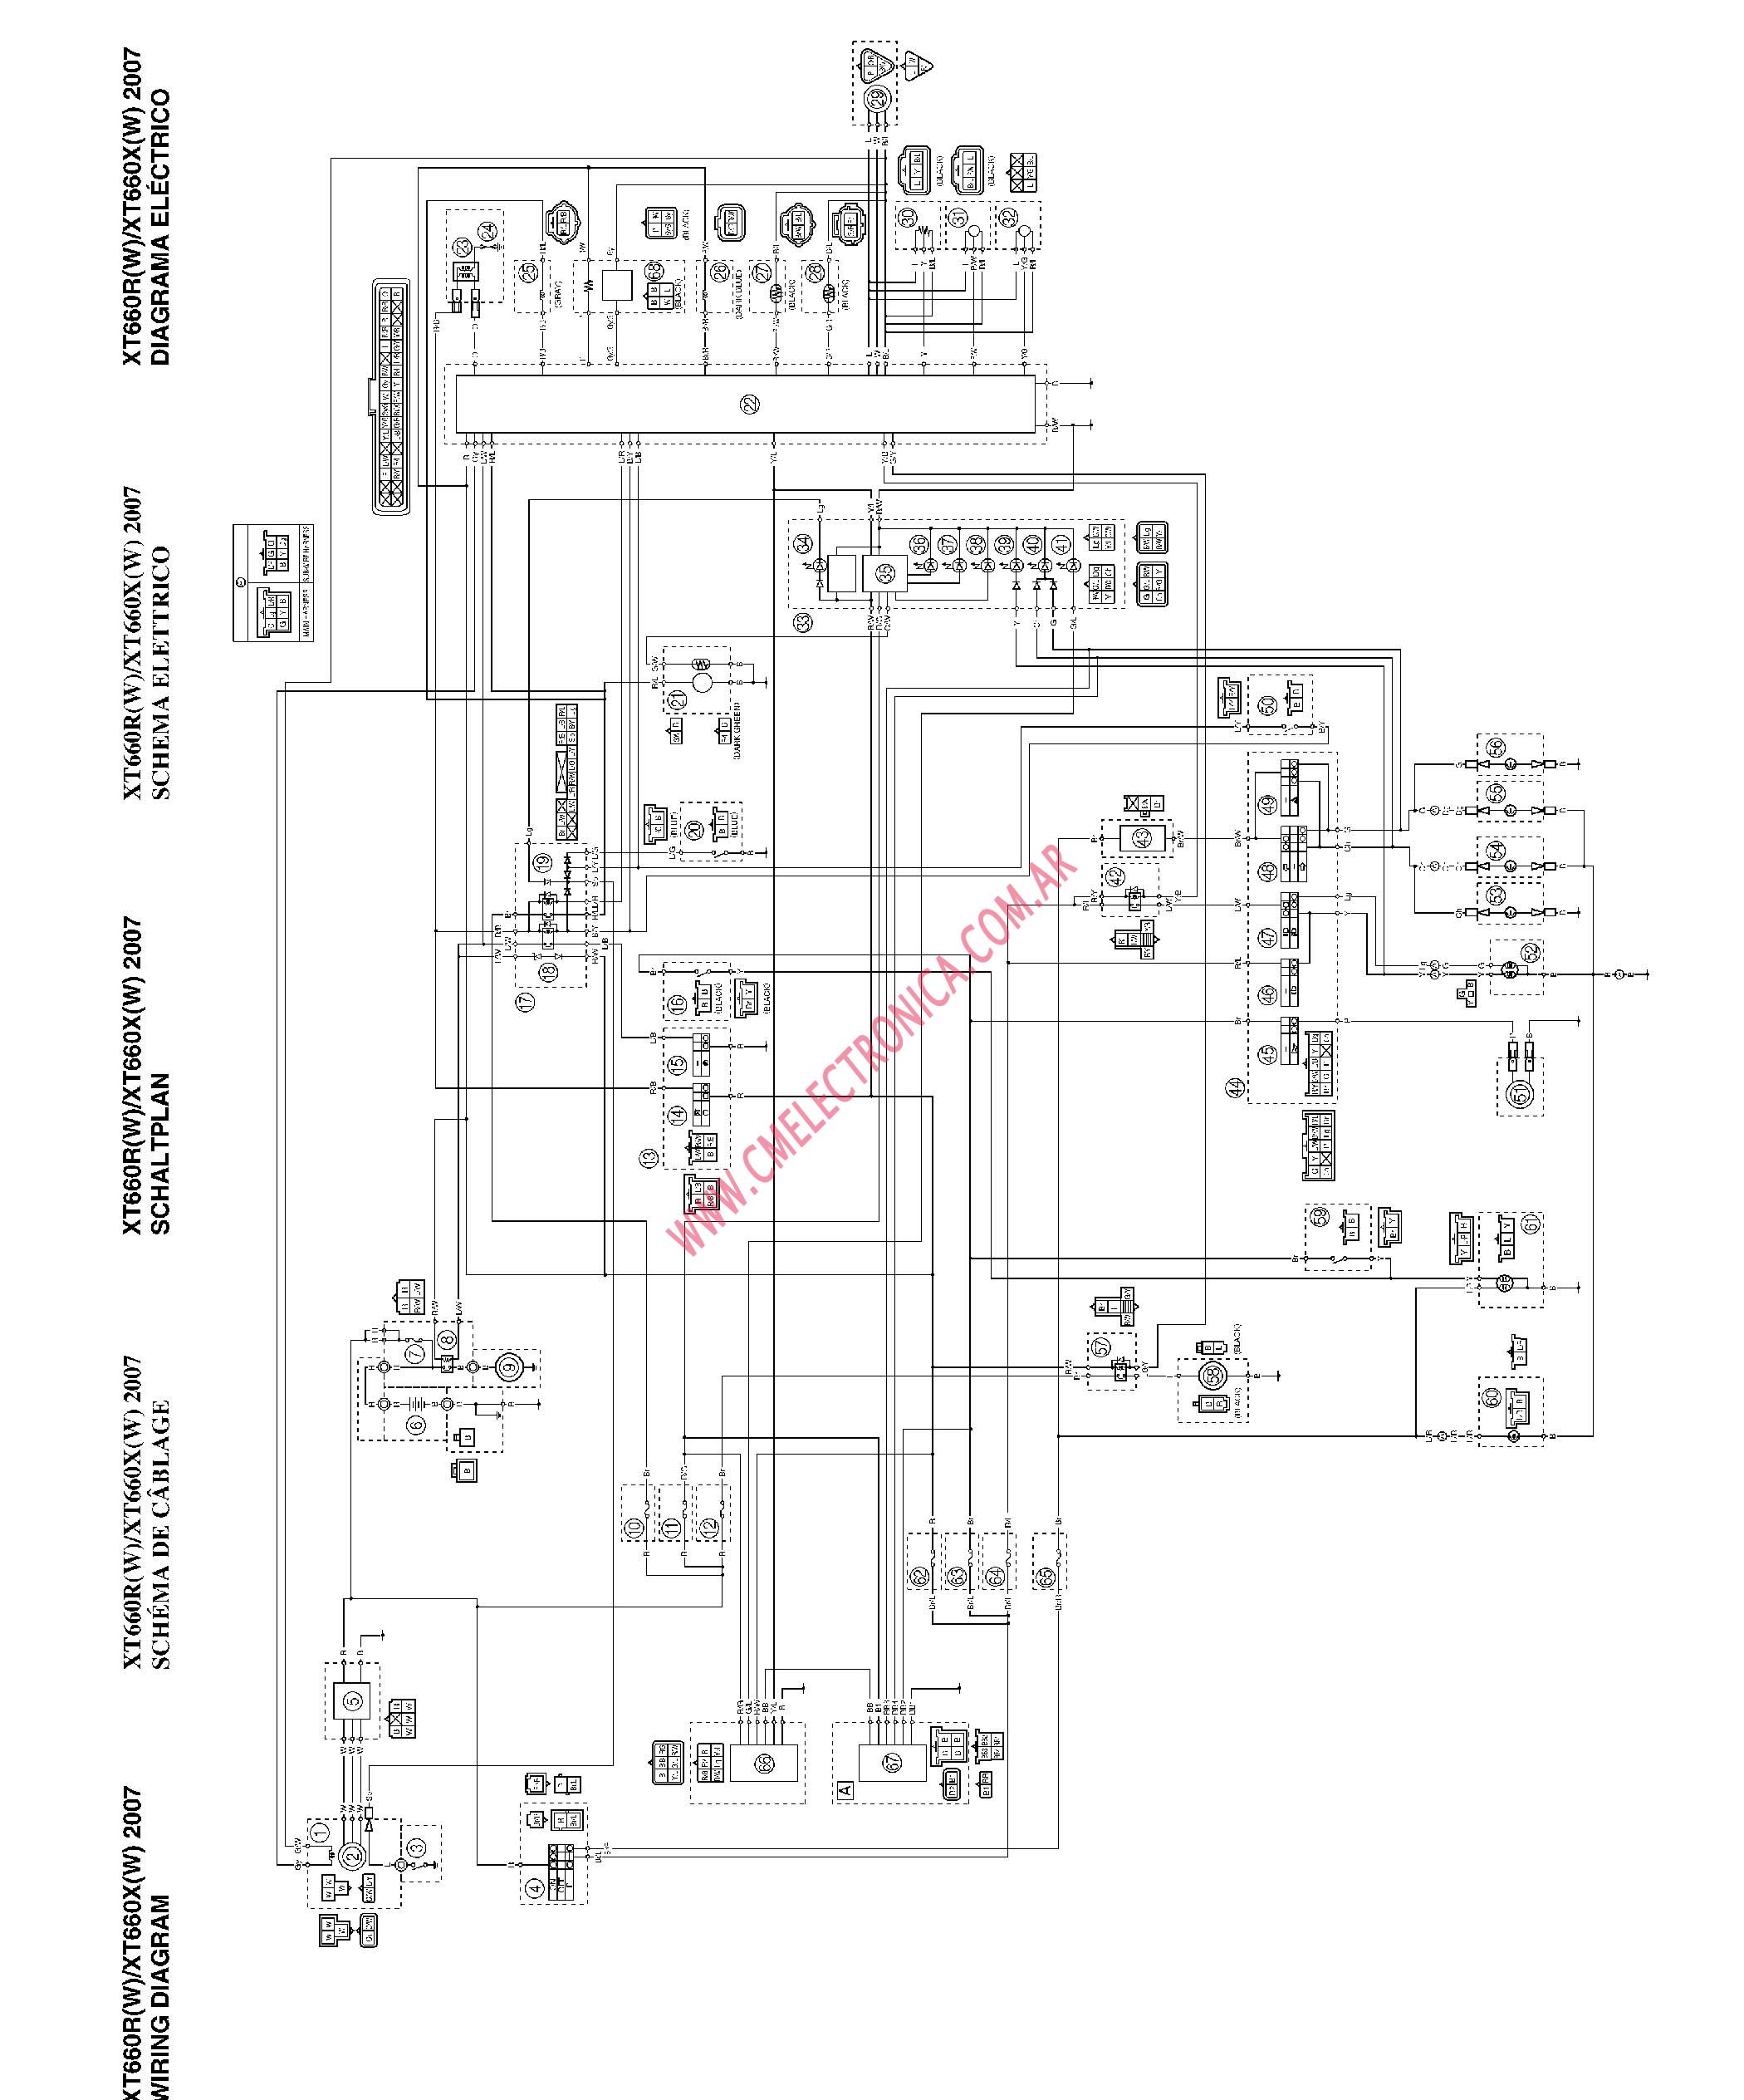 2002 yamaha grizzly wiring diagram in pdf